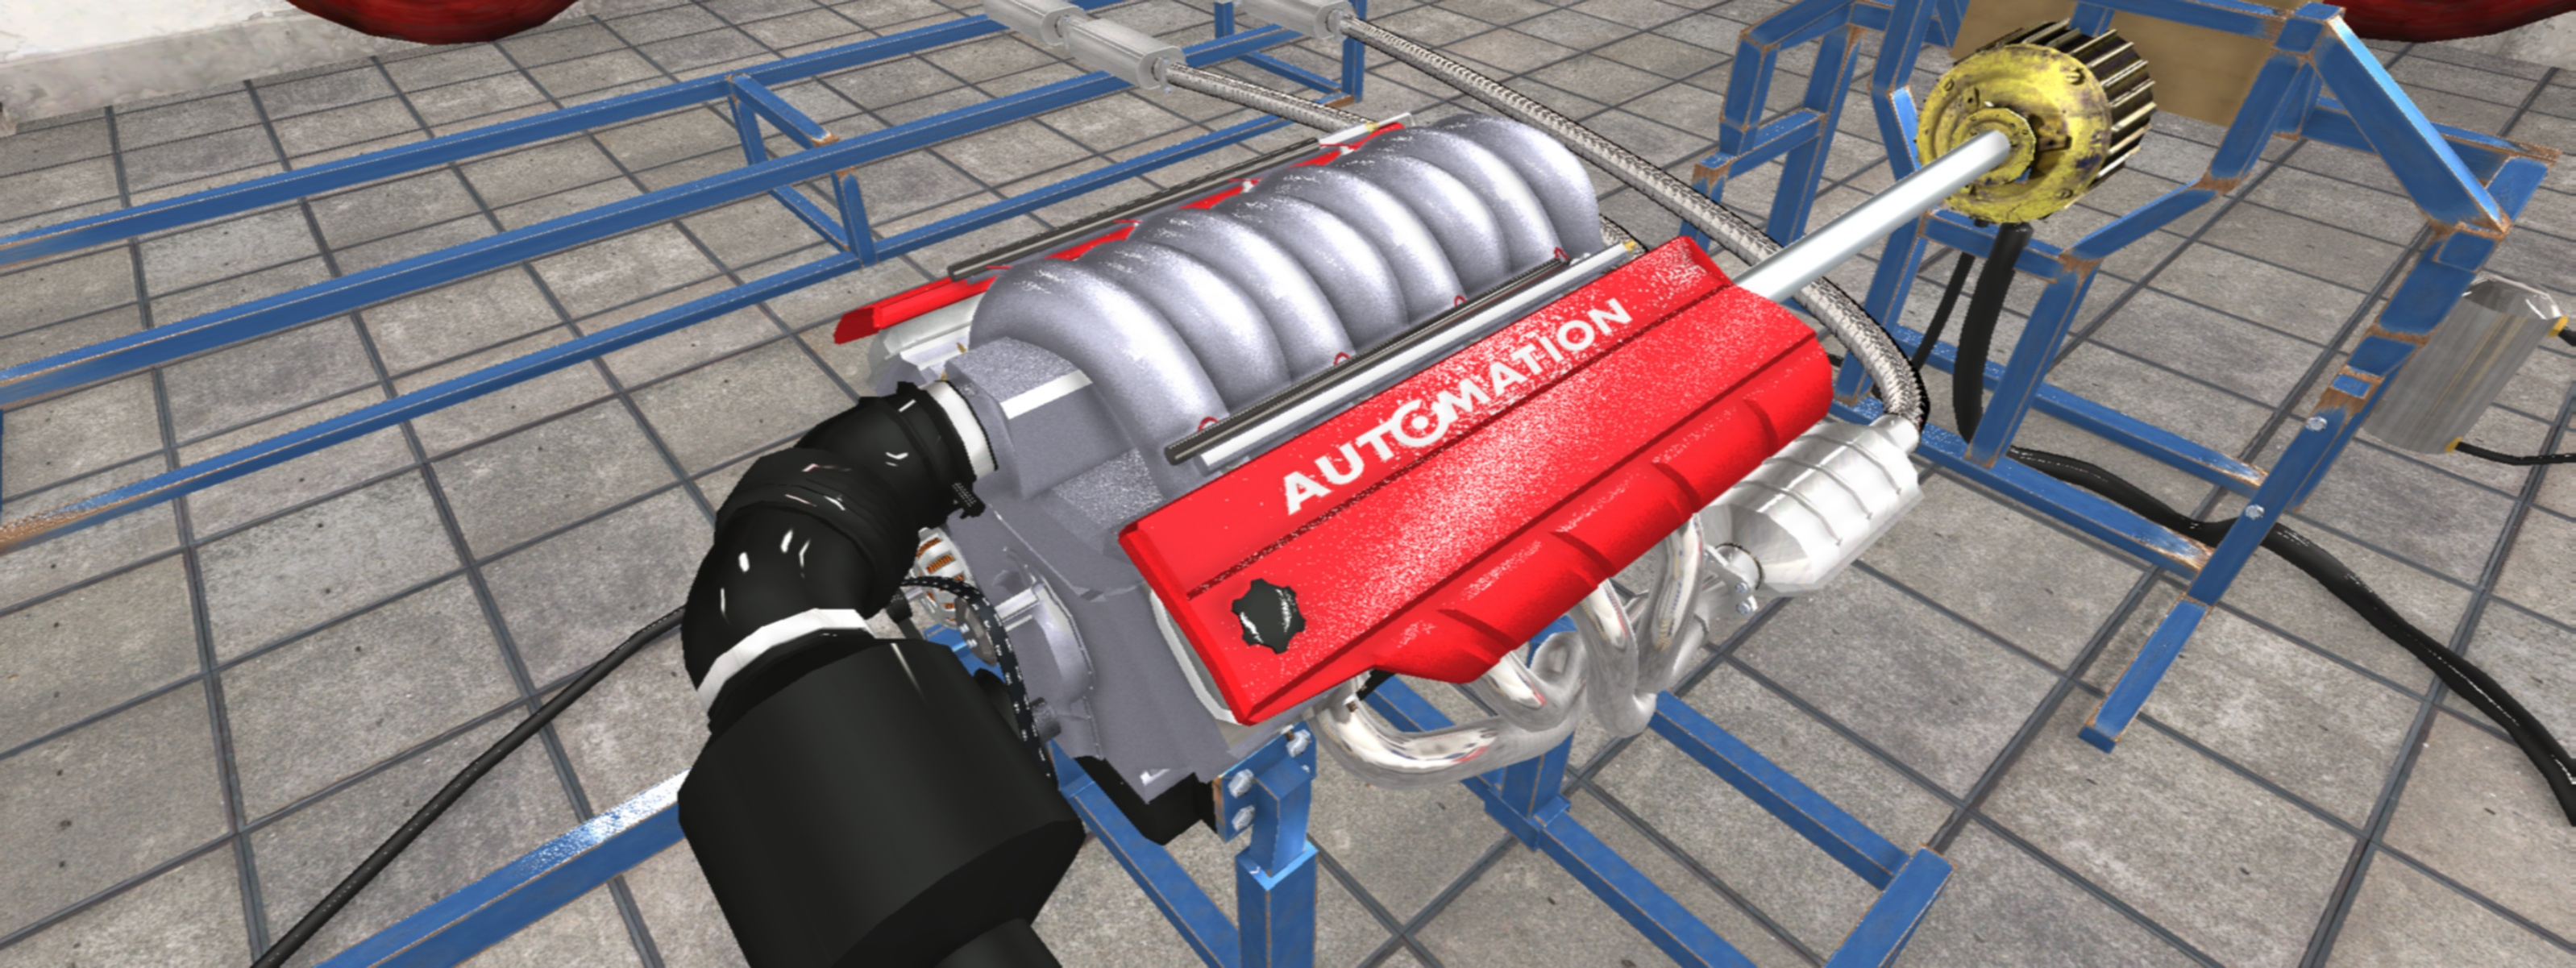 Ls1 Style V8 Image Automation The Car Company Tycoon